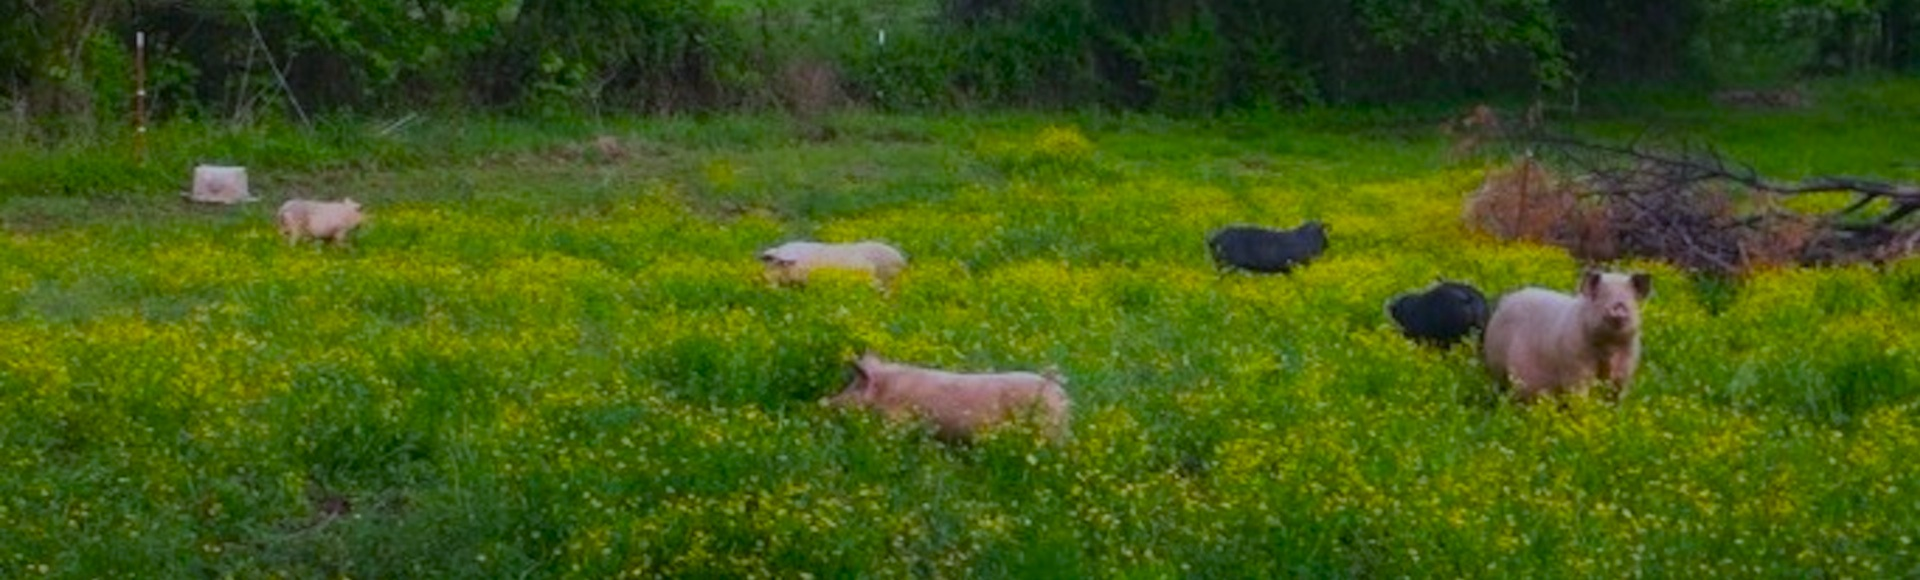 Pigs raised on grass and mud